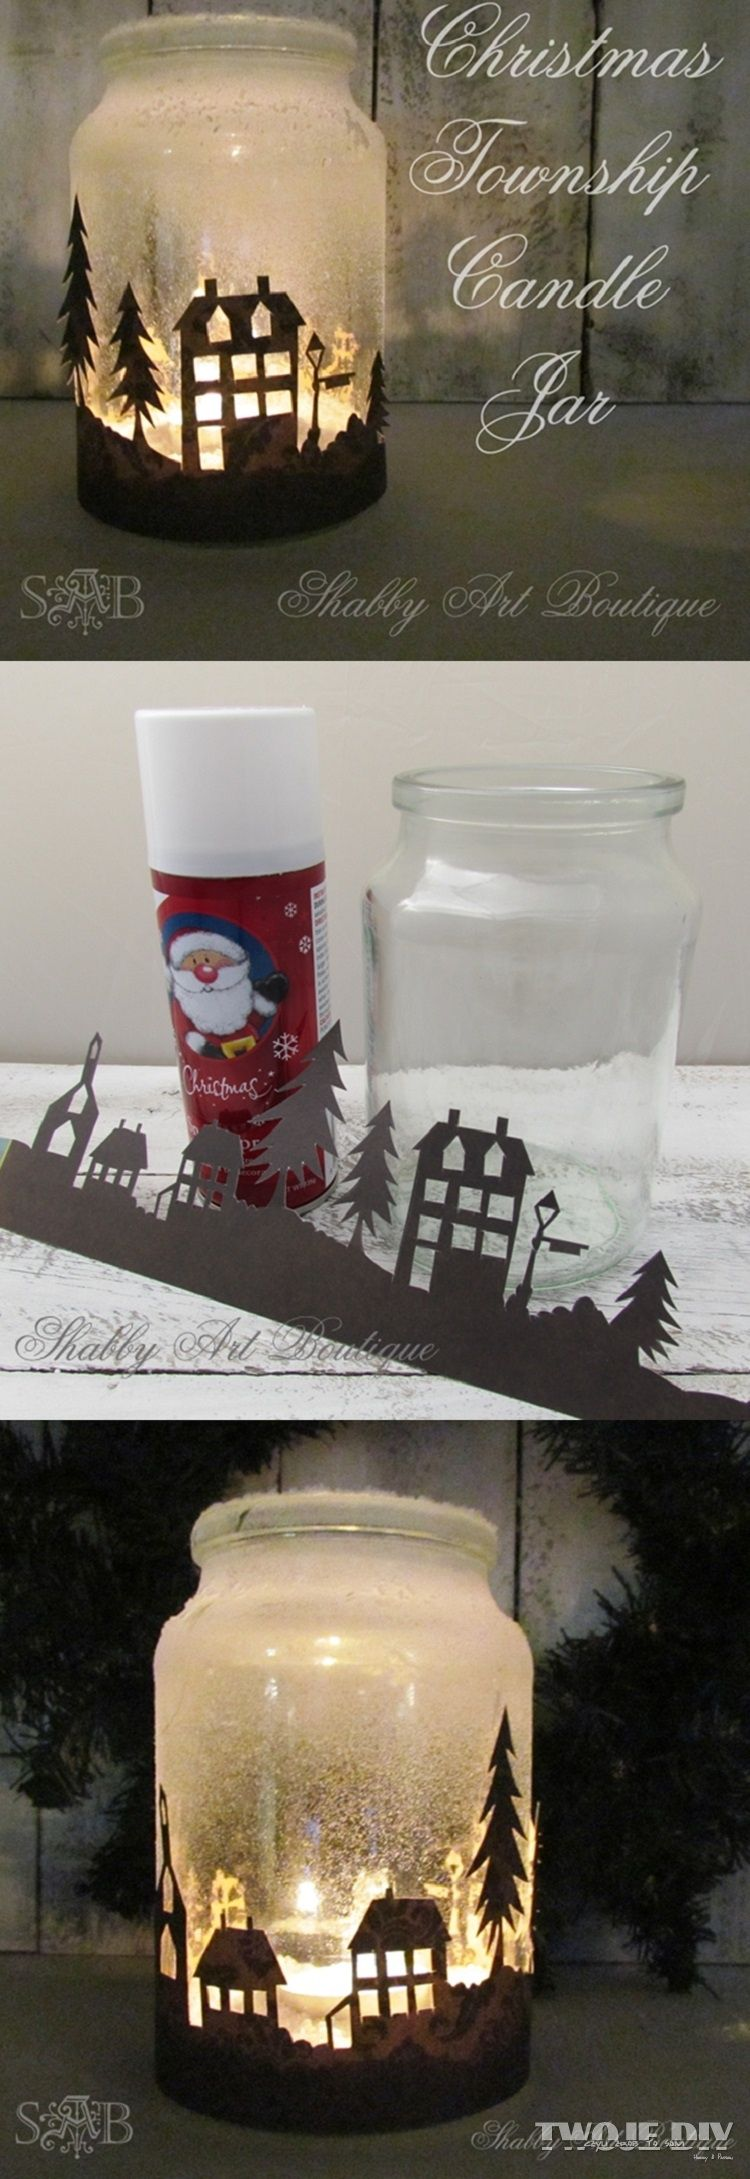 Christmas candle jar - could do this with vinyl #BigLots